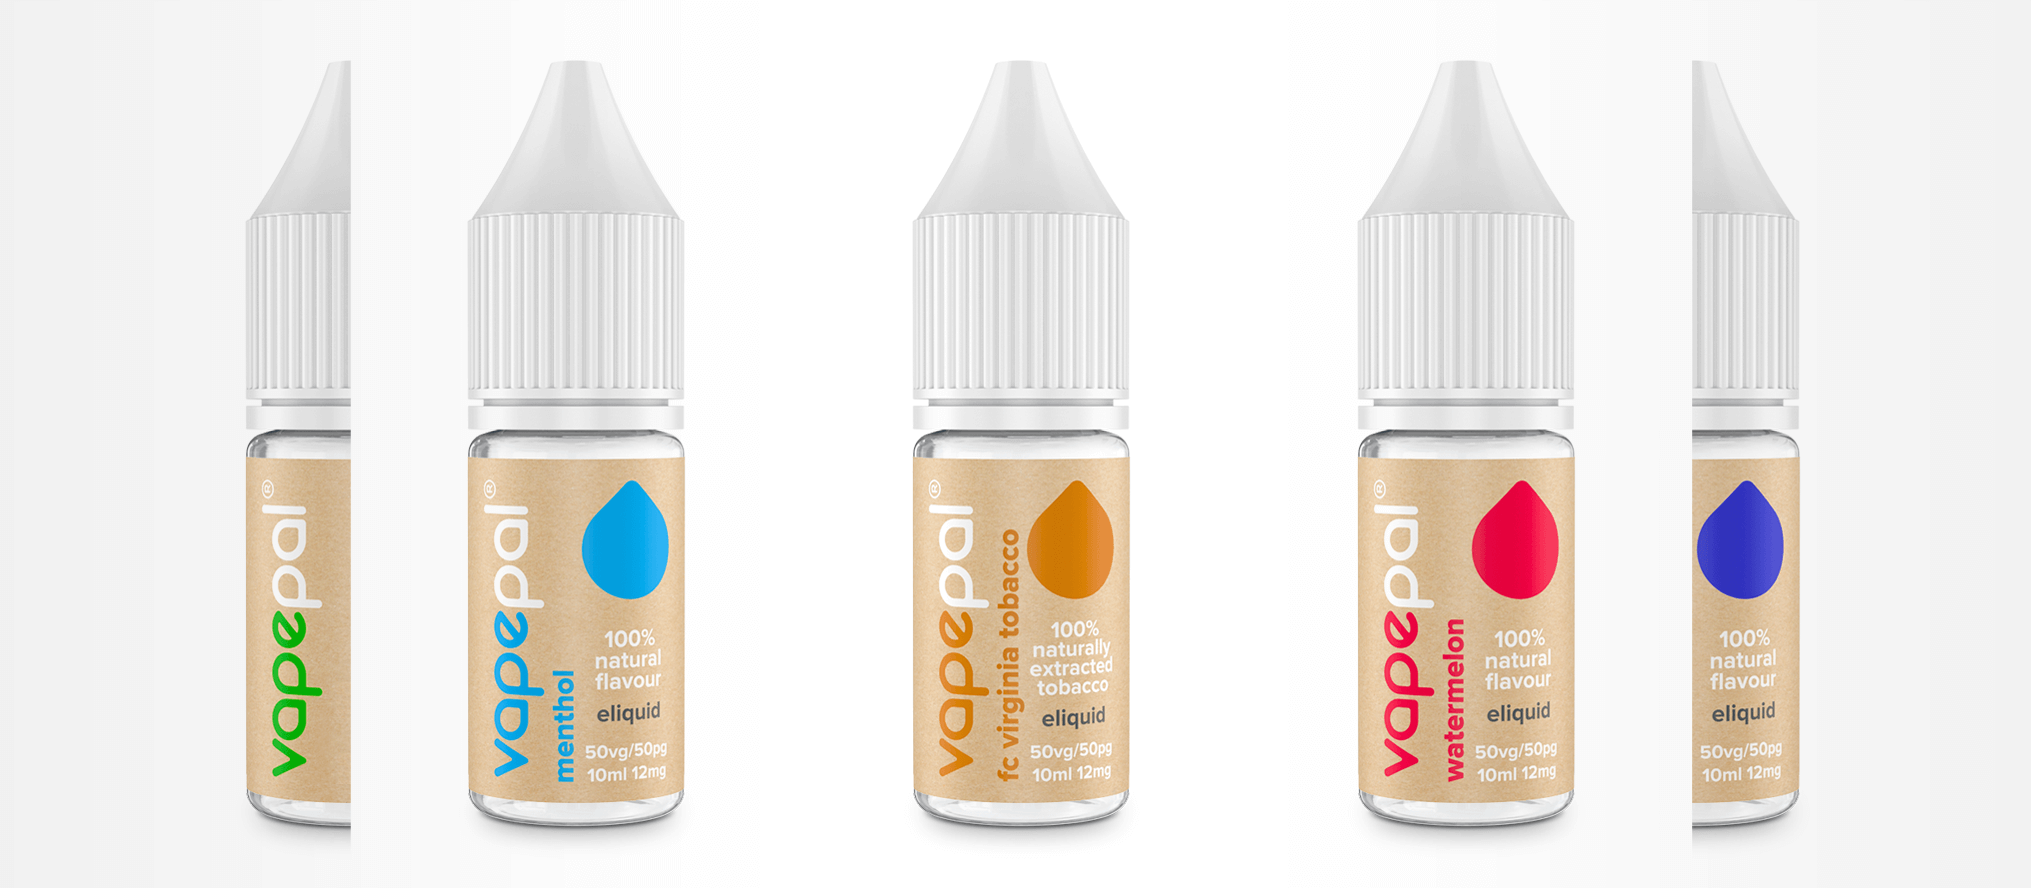 premium e liquid uk, premium e juice uk